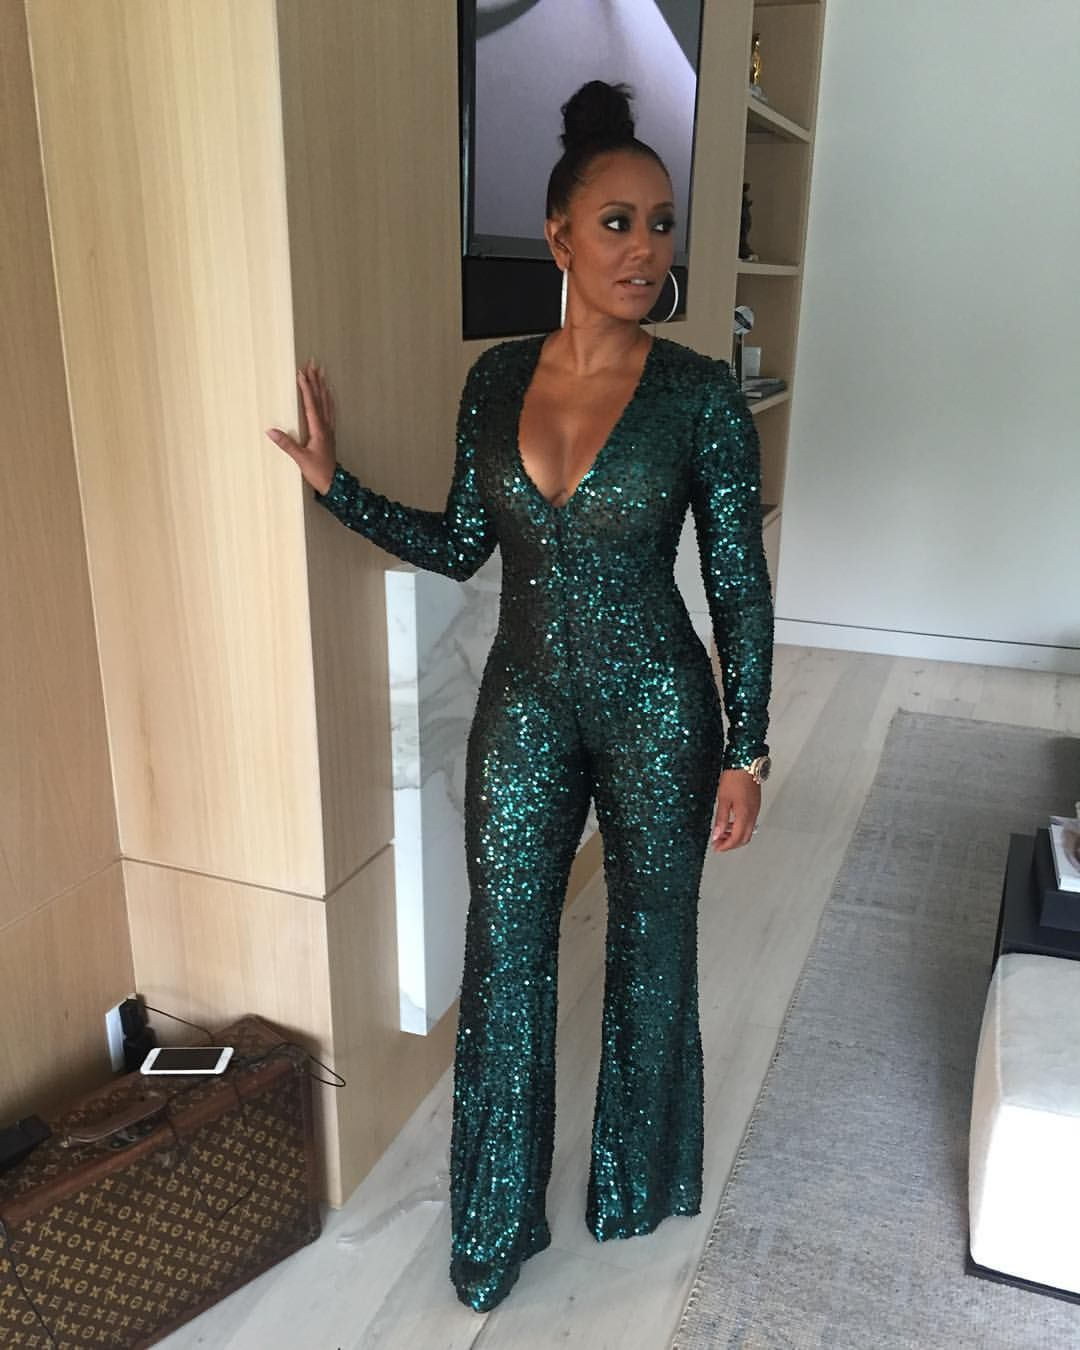 e7fb941099f Sparkly Sequined Hunter Green Jumpsuit  Instagram photo by Mel B • Apr 10